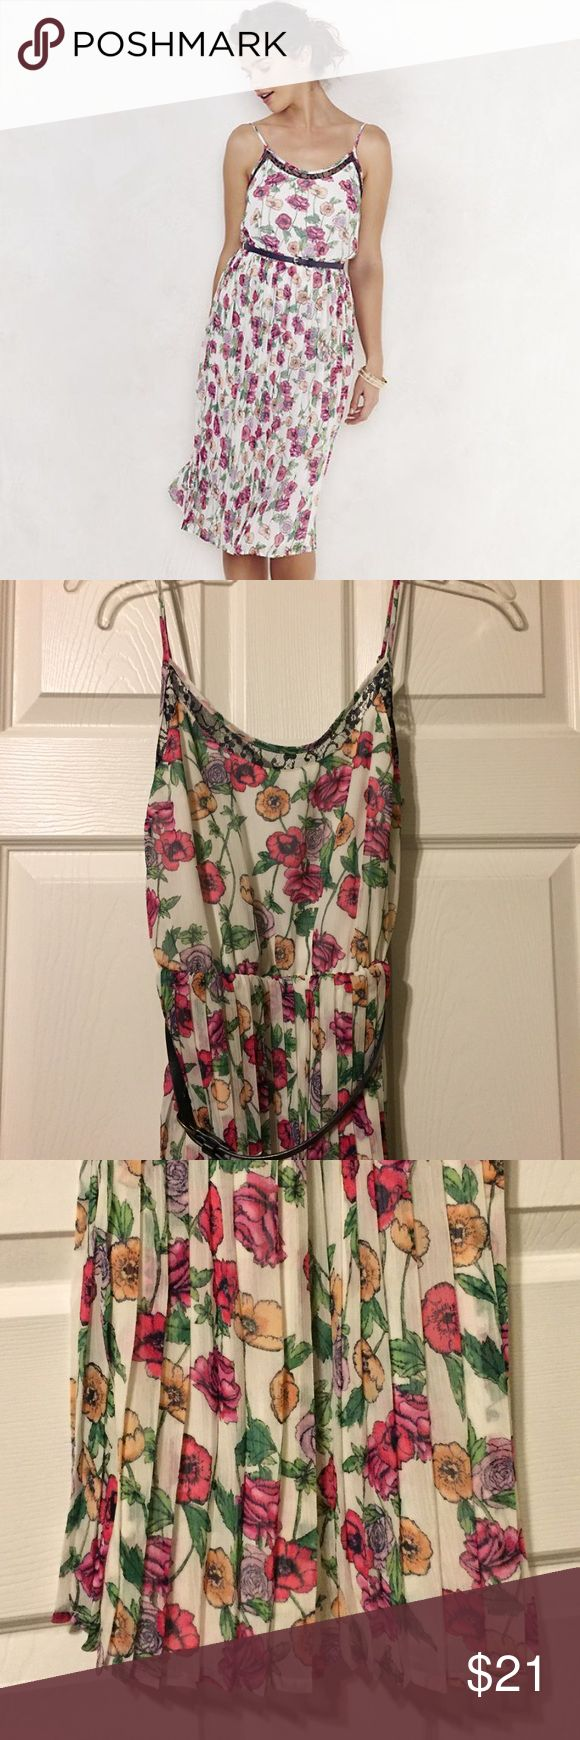 New Lauren Conrad LC Pleated Midi Dress Brand new with tags. Adjustable straps. Belted. Floral print. Adorable! LC Lauren Conrad Dresses Midi